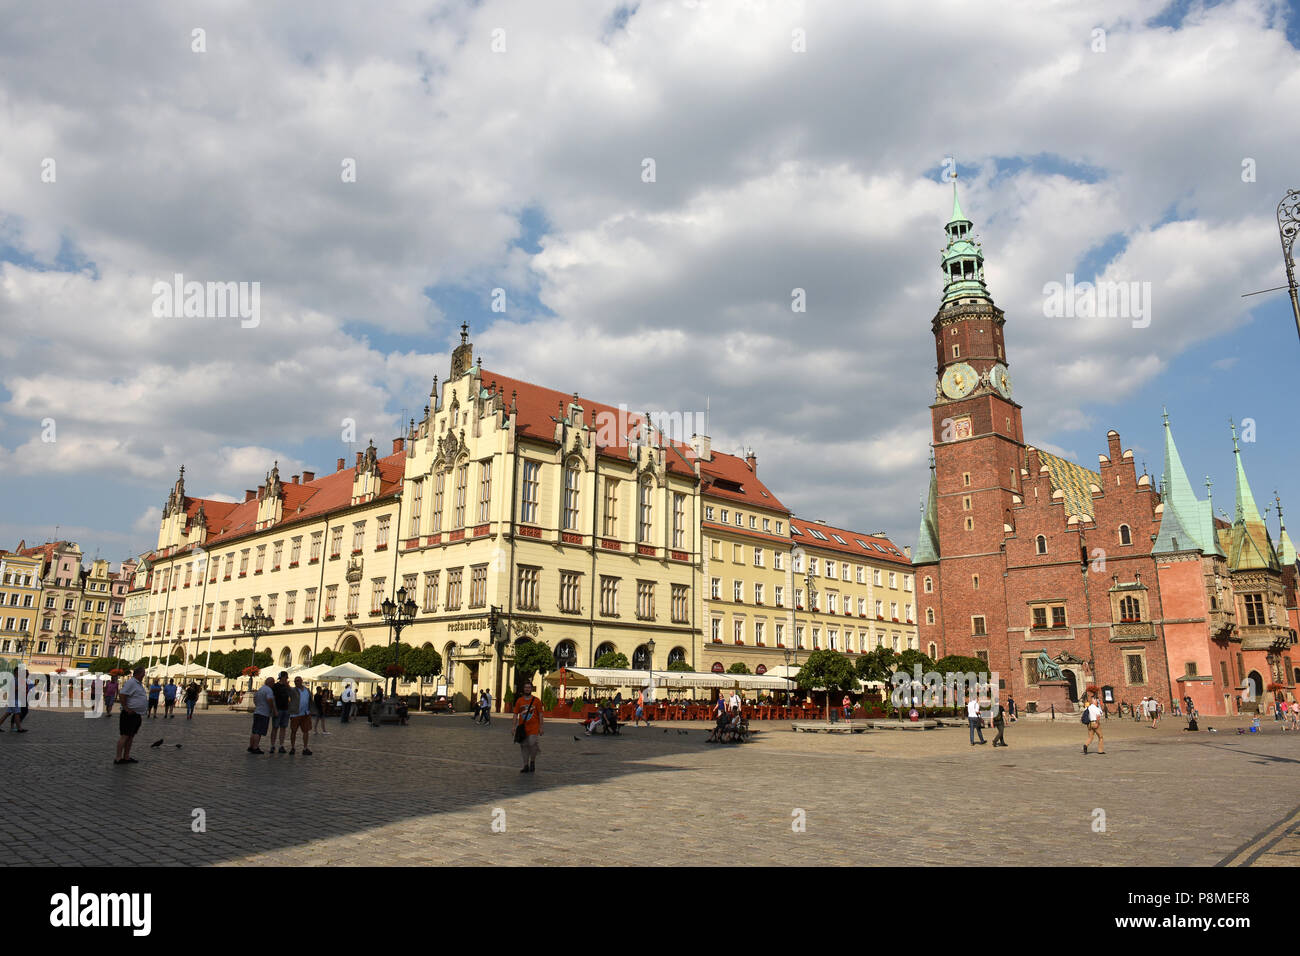 Market Square and old twon hall in the Old Town of Wroclaw, Silesia, Poland, Europe - Stock Image